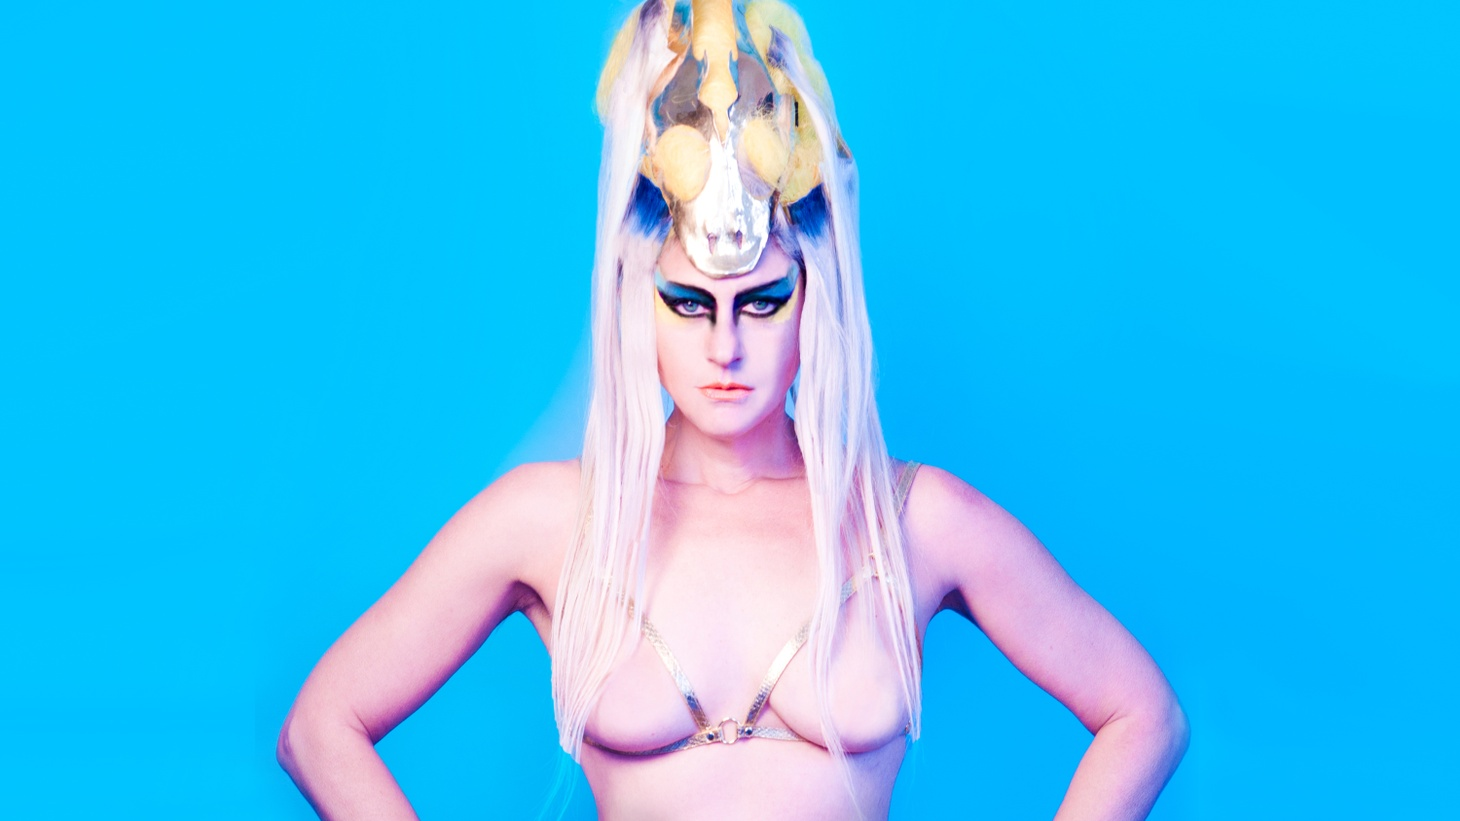 It's been six long years since the artist known as Peaches released a studio album.